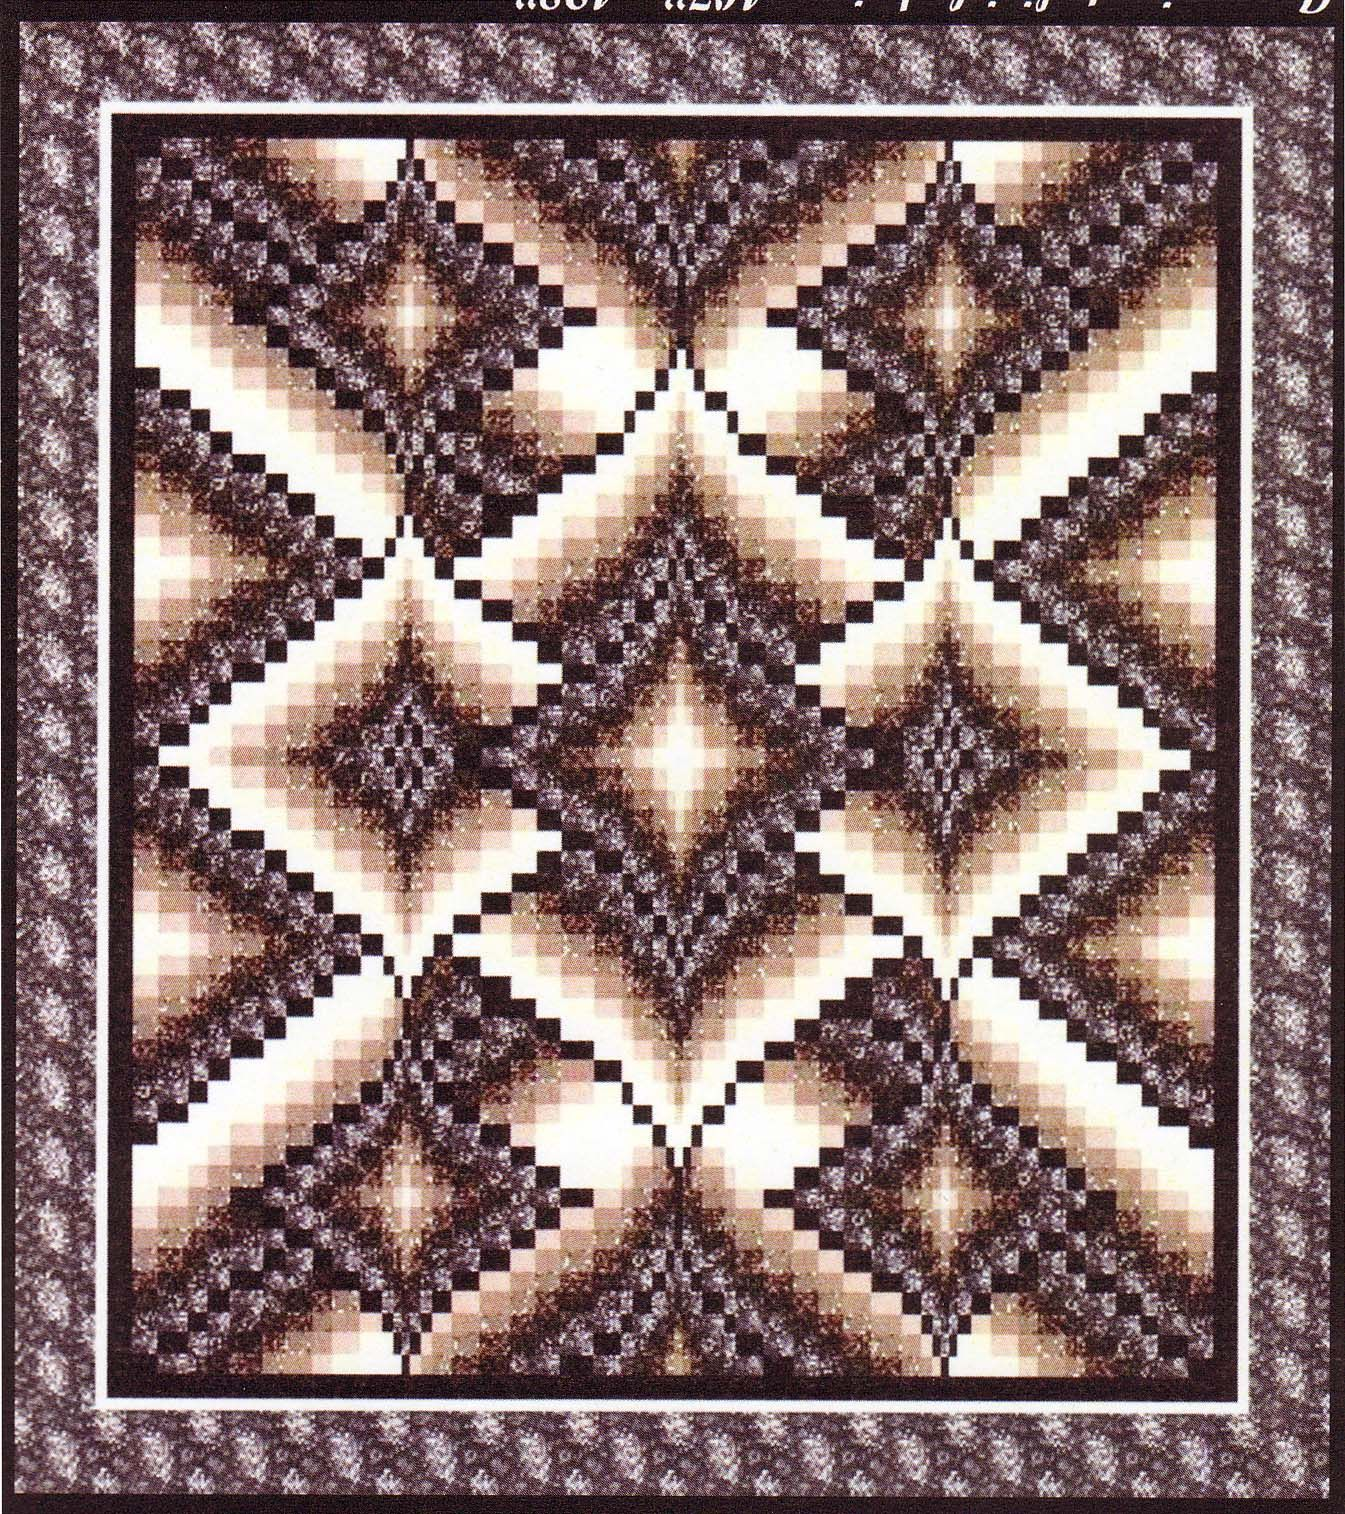 Bargello Quilting Patterns To Download - Bing Images Quilts,Bargello Board #2 Pinterest ...